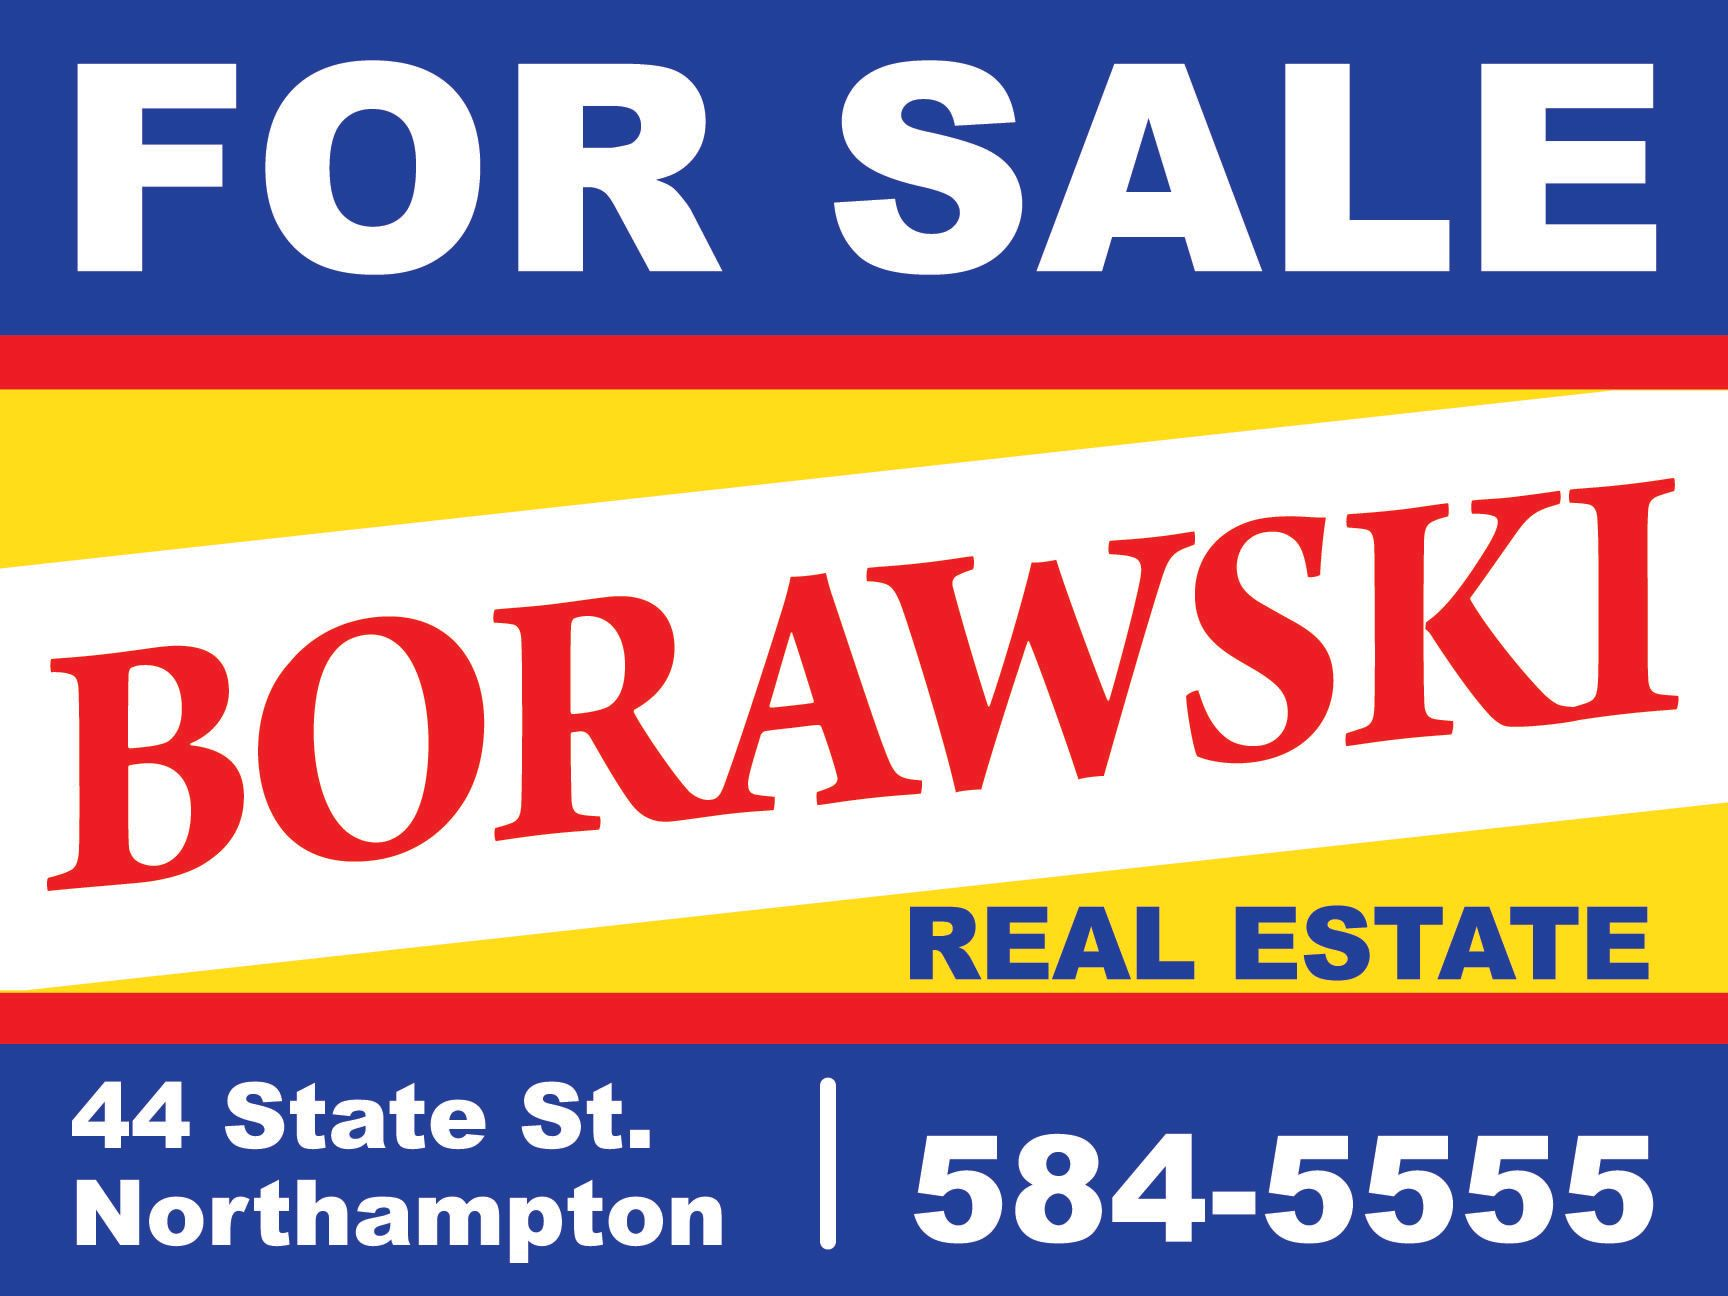 Peter Davies at Borawski Real Estate